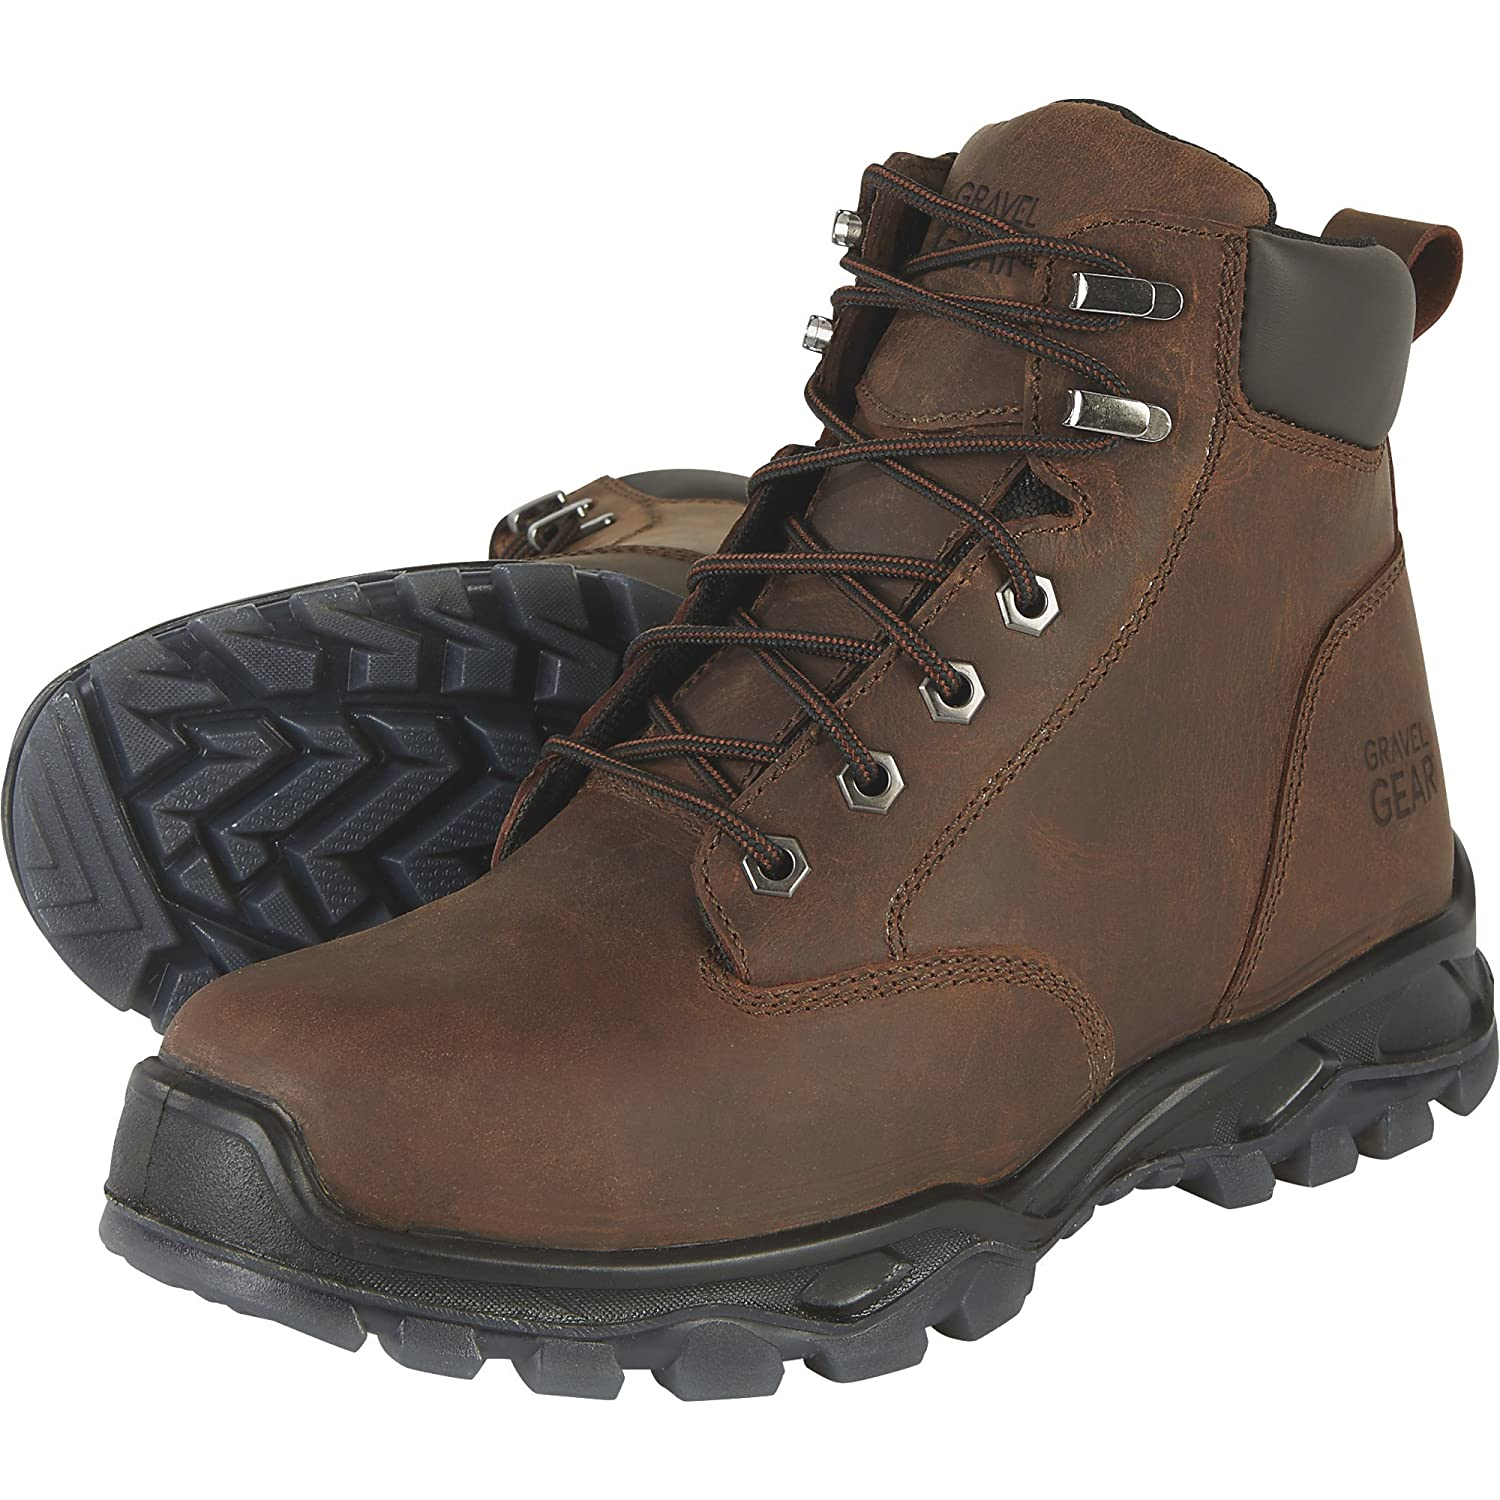 0a179e11001 Amazon.com | Gravel Gear 6in. Waterproof Steel Toe Work Boots ...